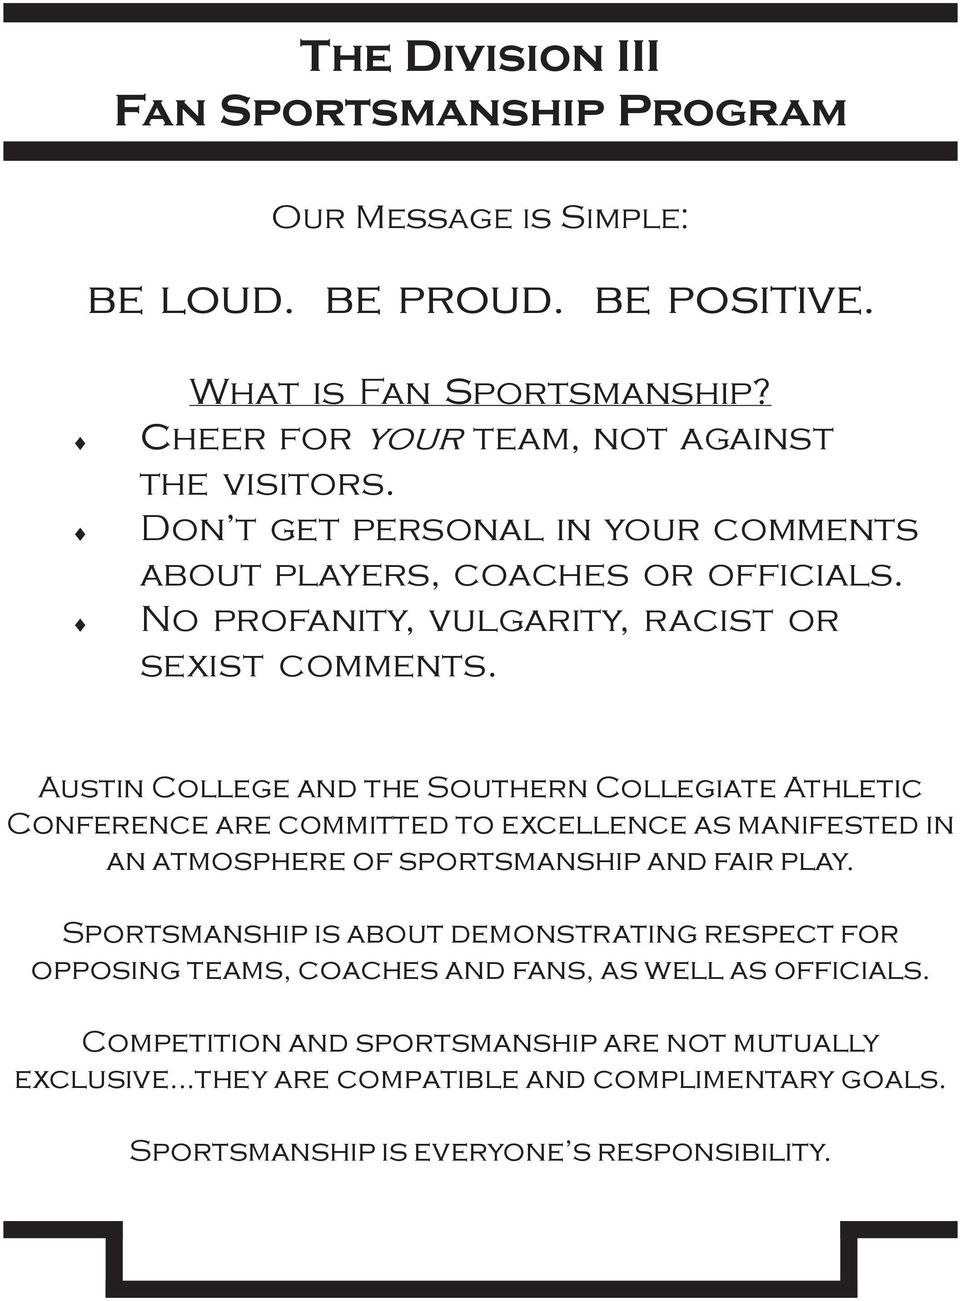 Austin College and the Southern Collegiate Athletic Conference are committed to excellence as manifested in an atmosphere of sportsmanship and fair play.